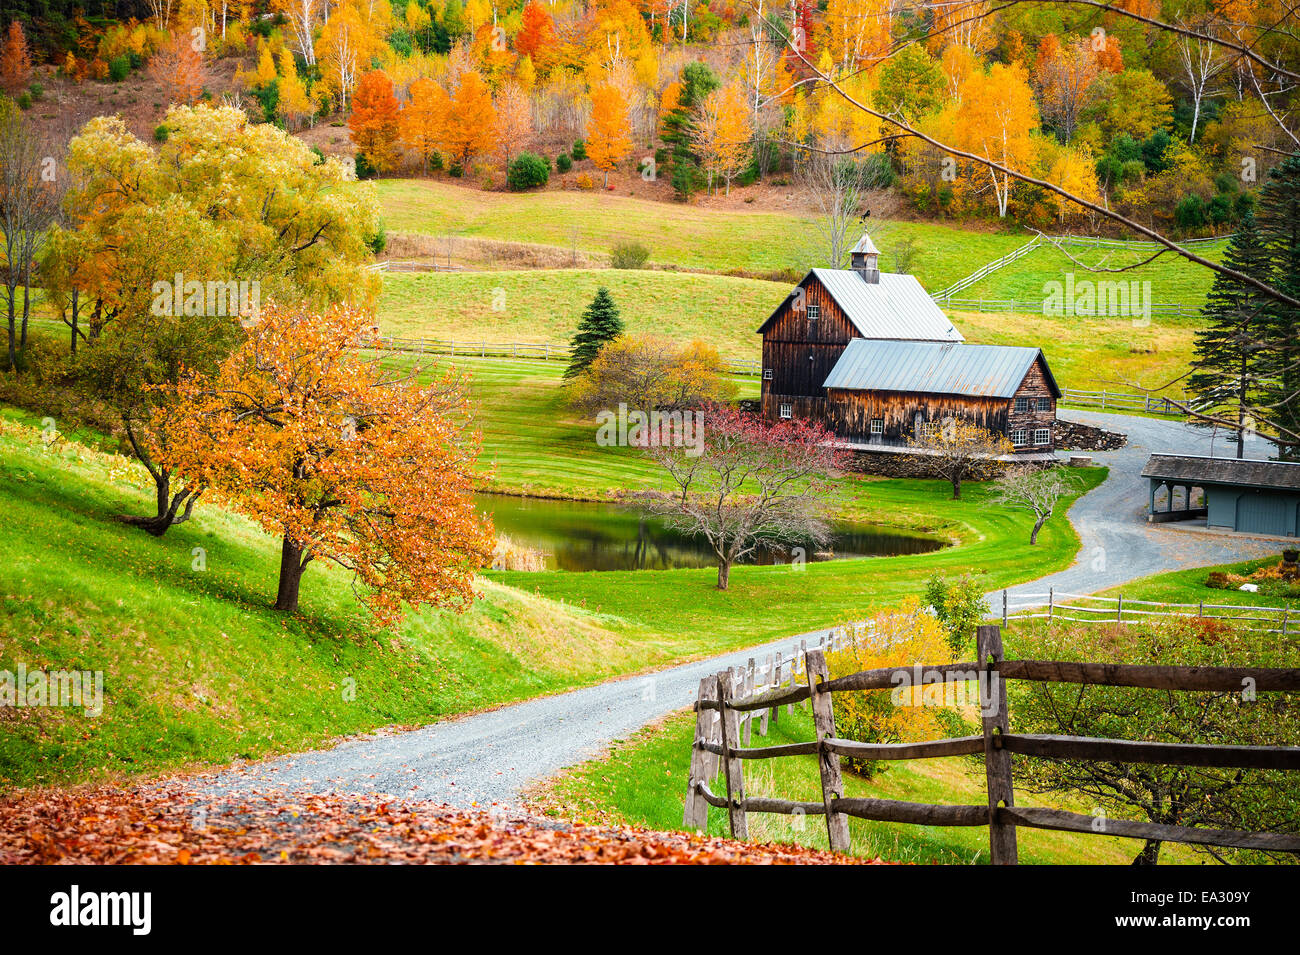 New Hampshire Fall Foliage Wallpaper Fall Foliage New England Countryside At Woodstock